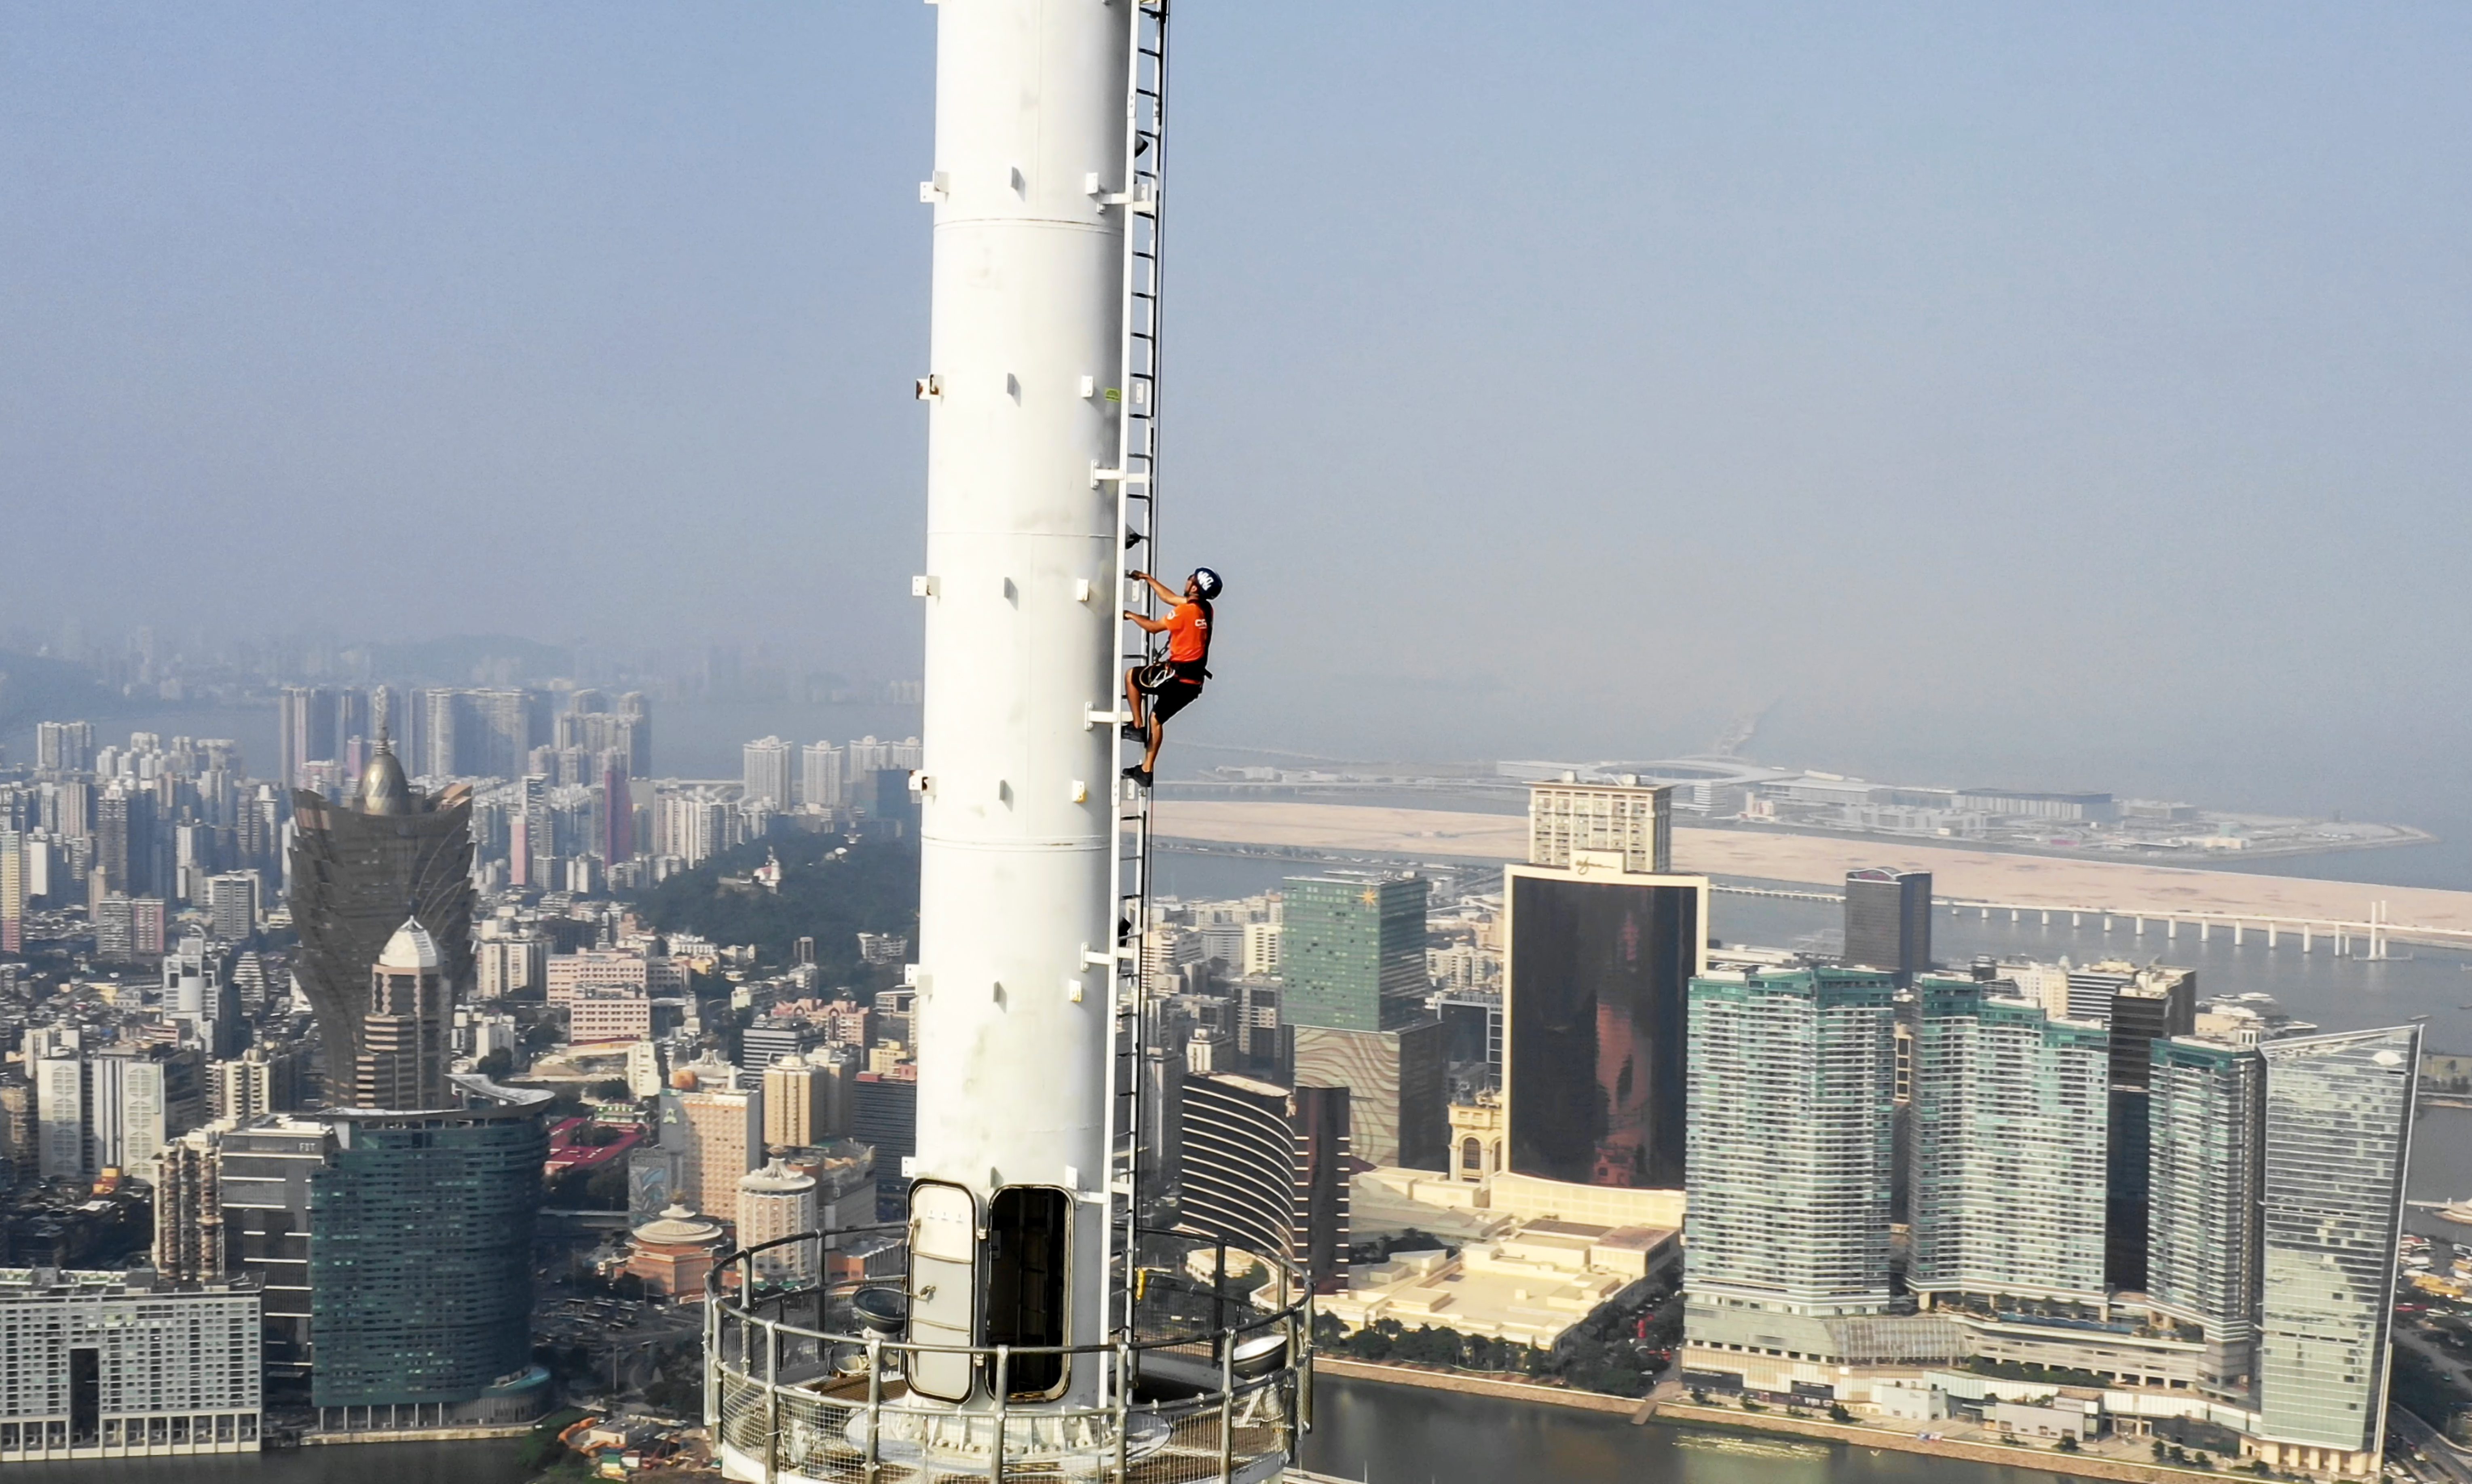 Macau Lifestyle AJ Hackett Way to the TOP Macau Tower Climb 338m